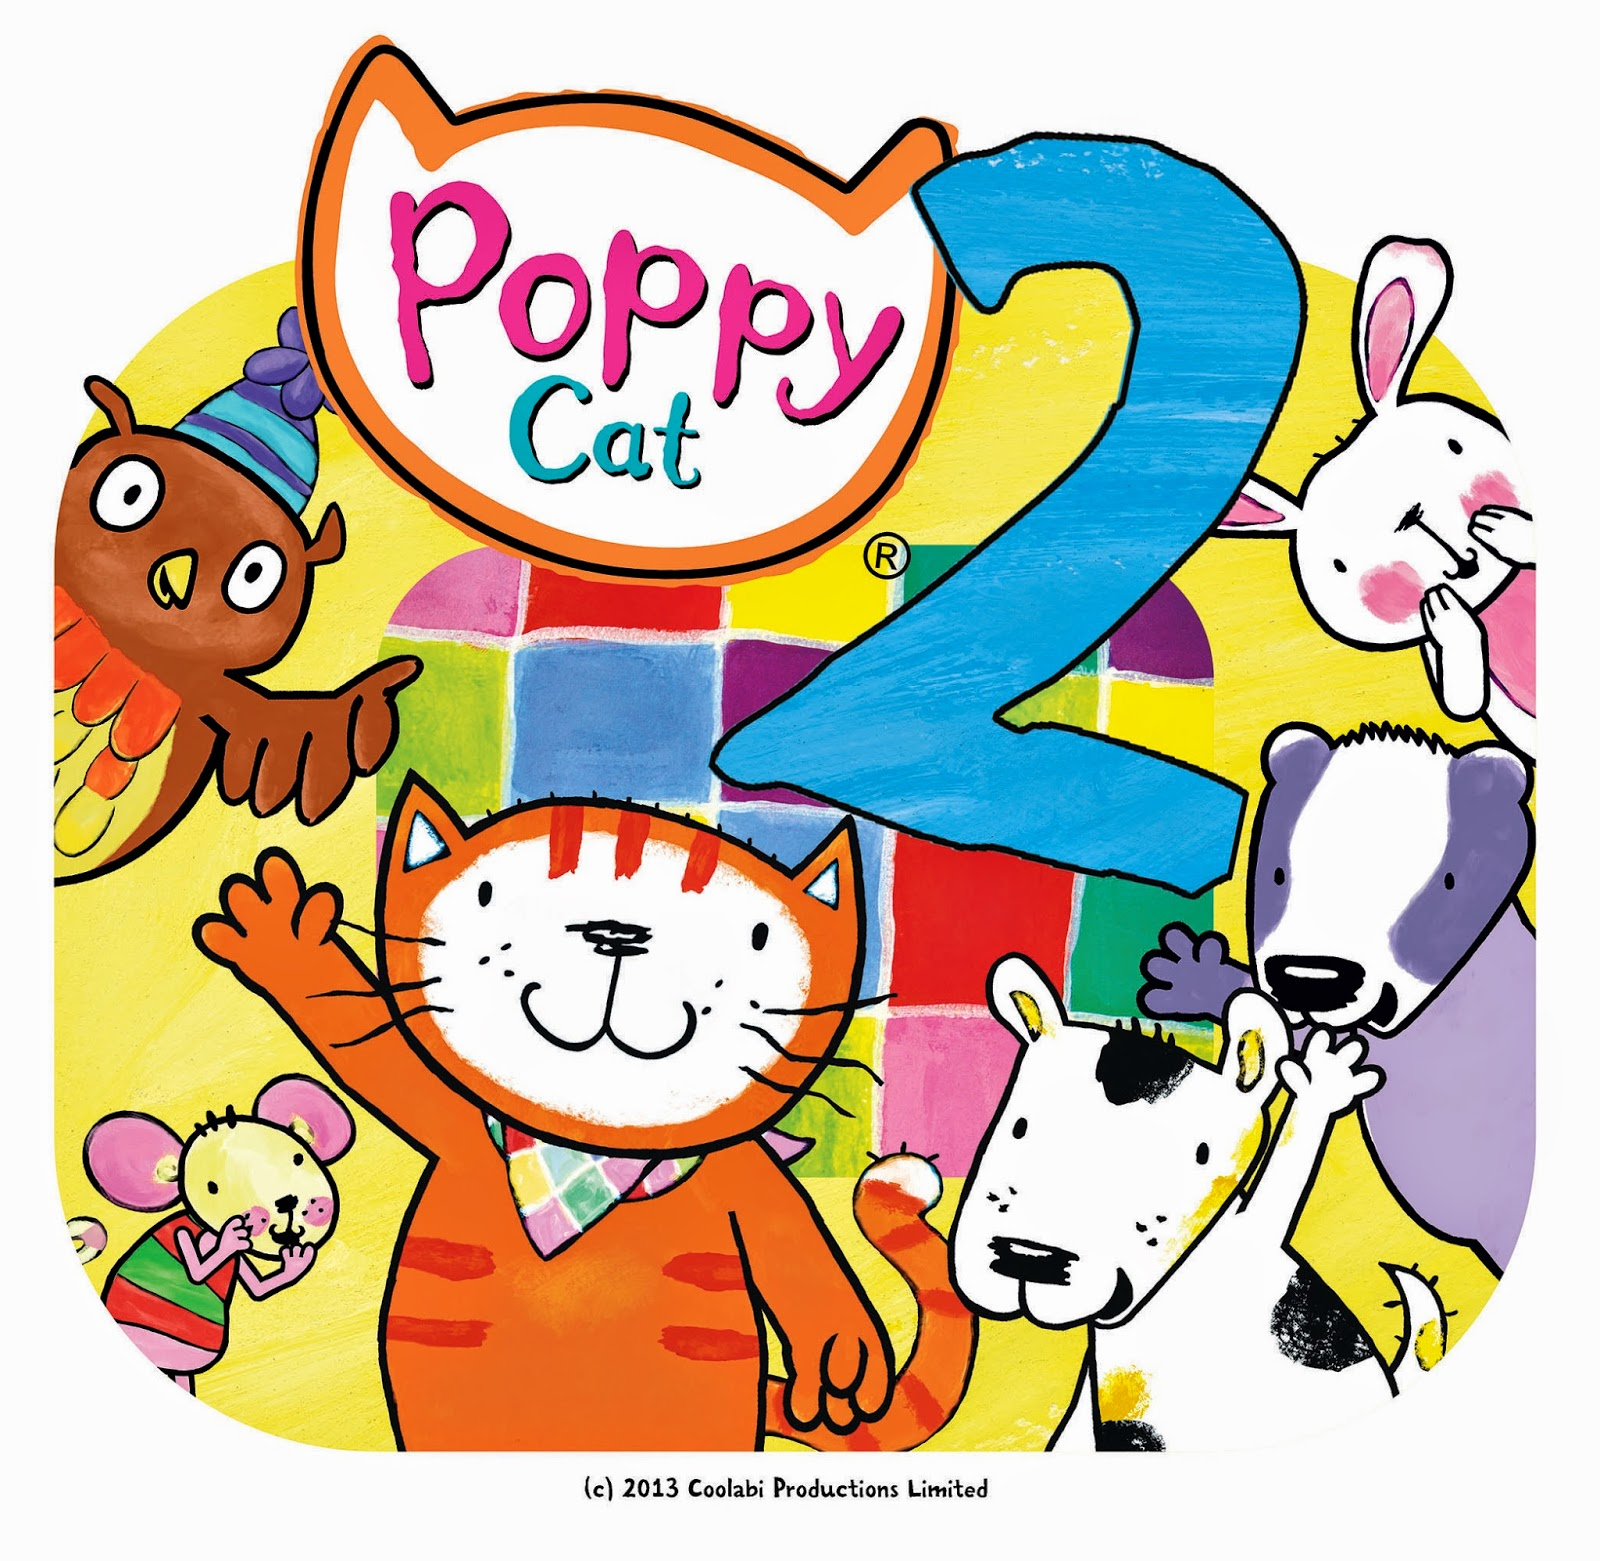 poppy cat, nick jr